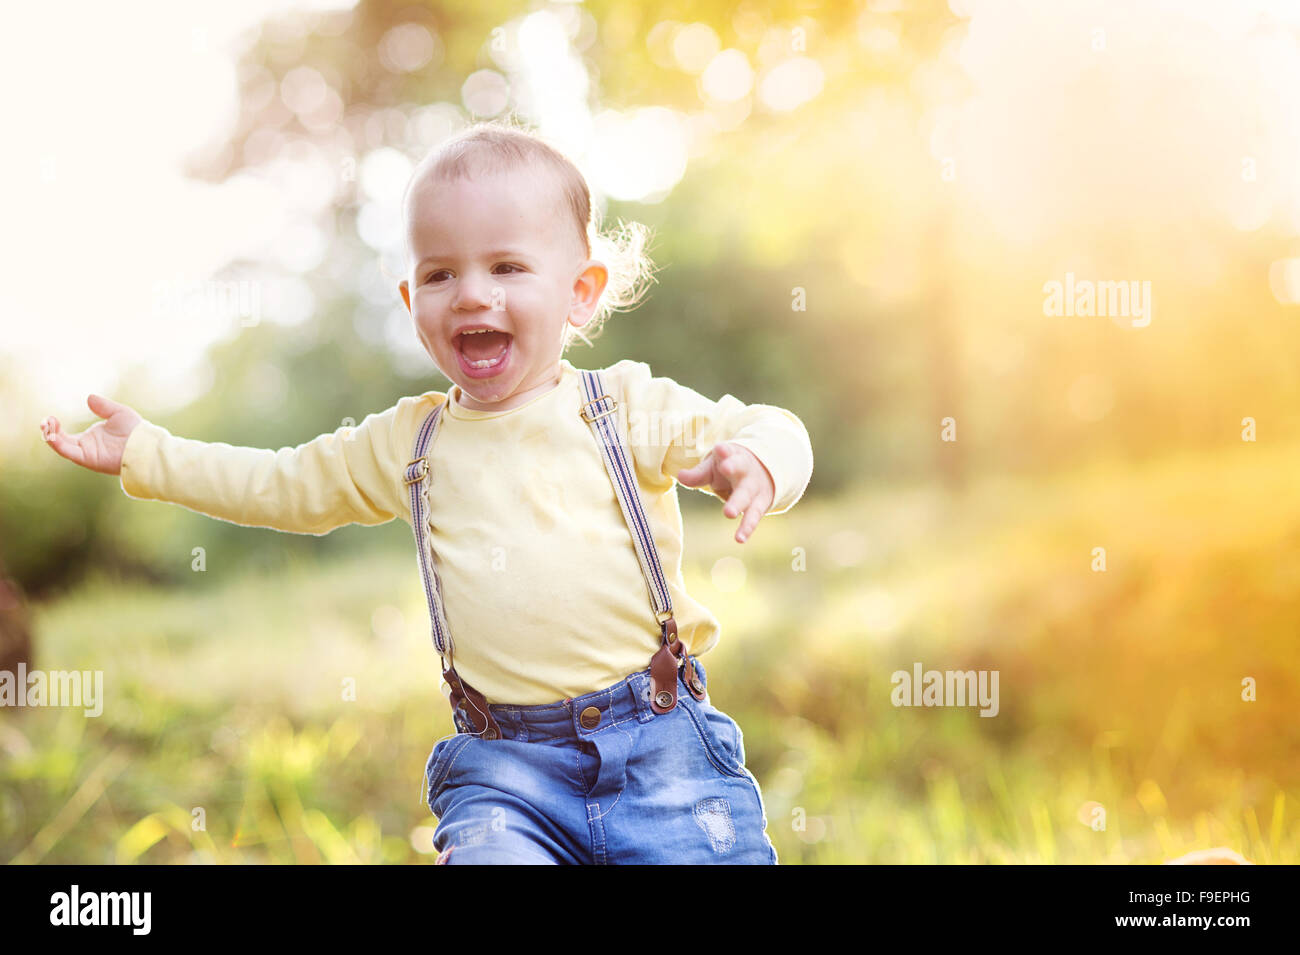 Little boy playing and having fun outside in a park Stock Photo